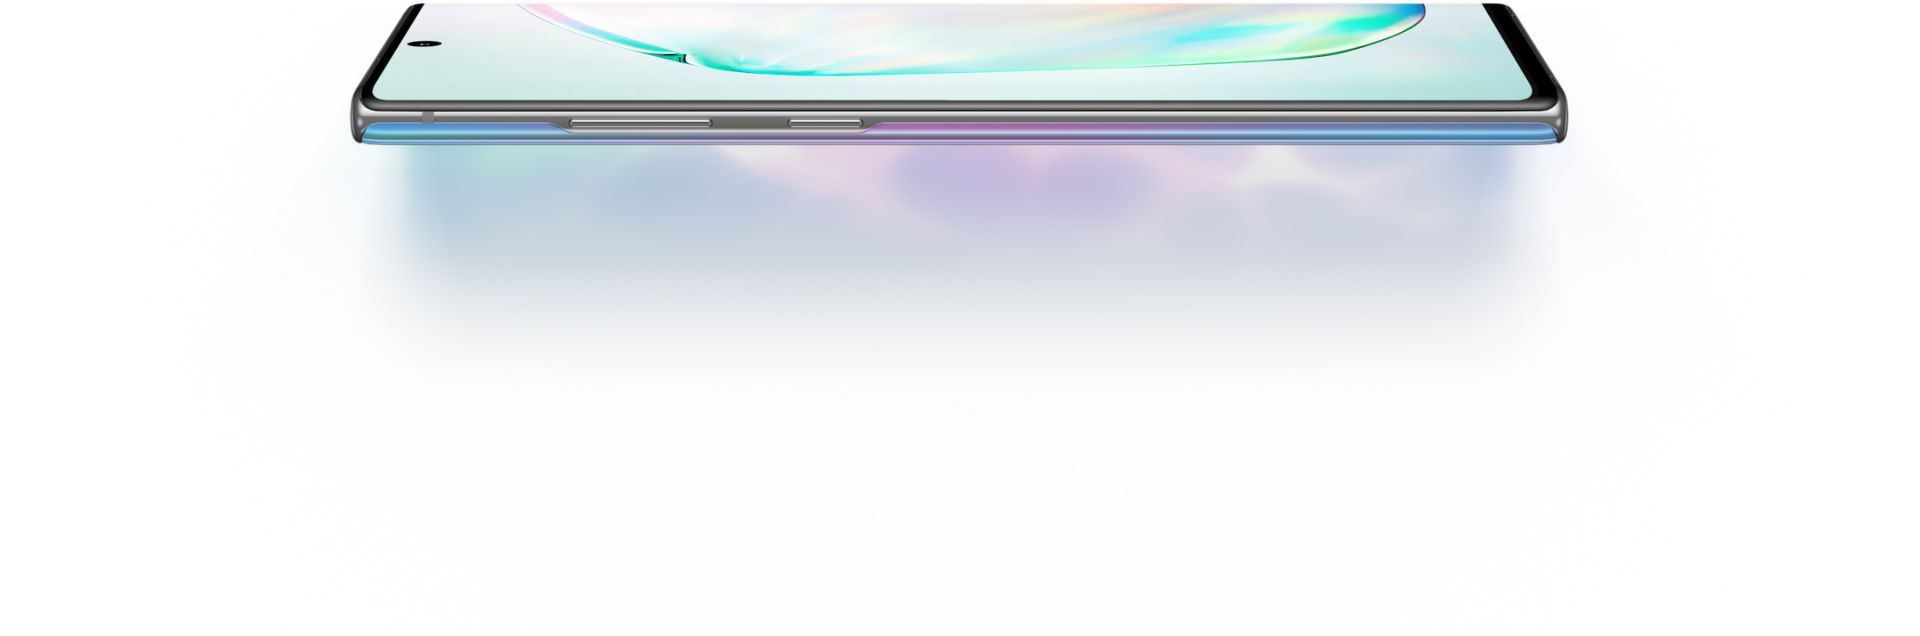 The left edge of the Samsung Note 10